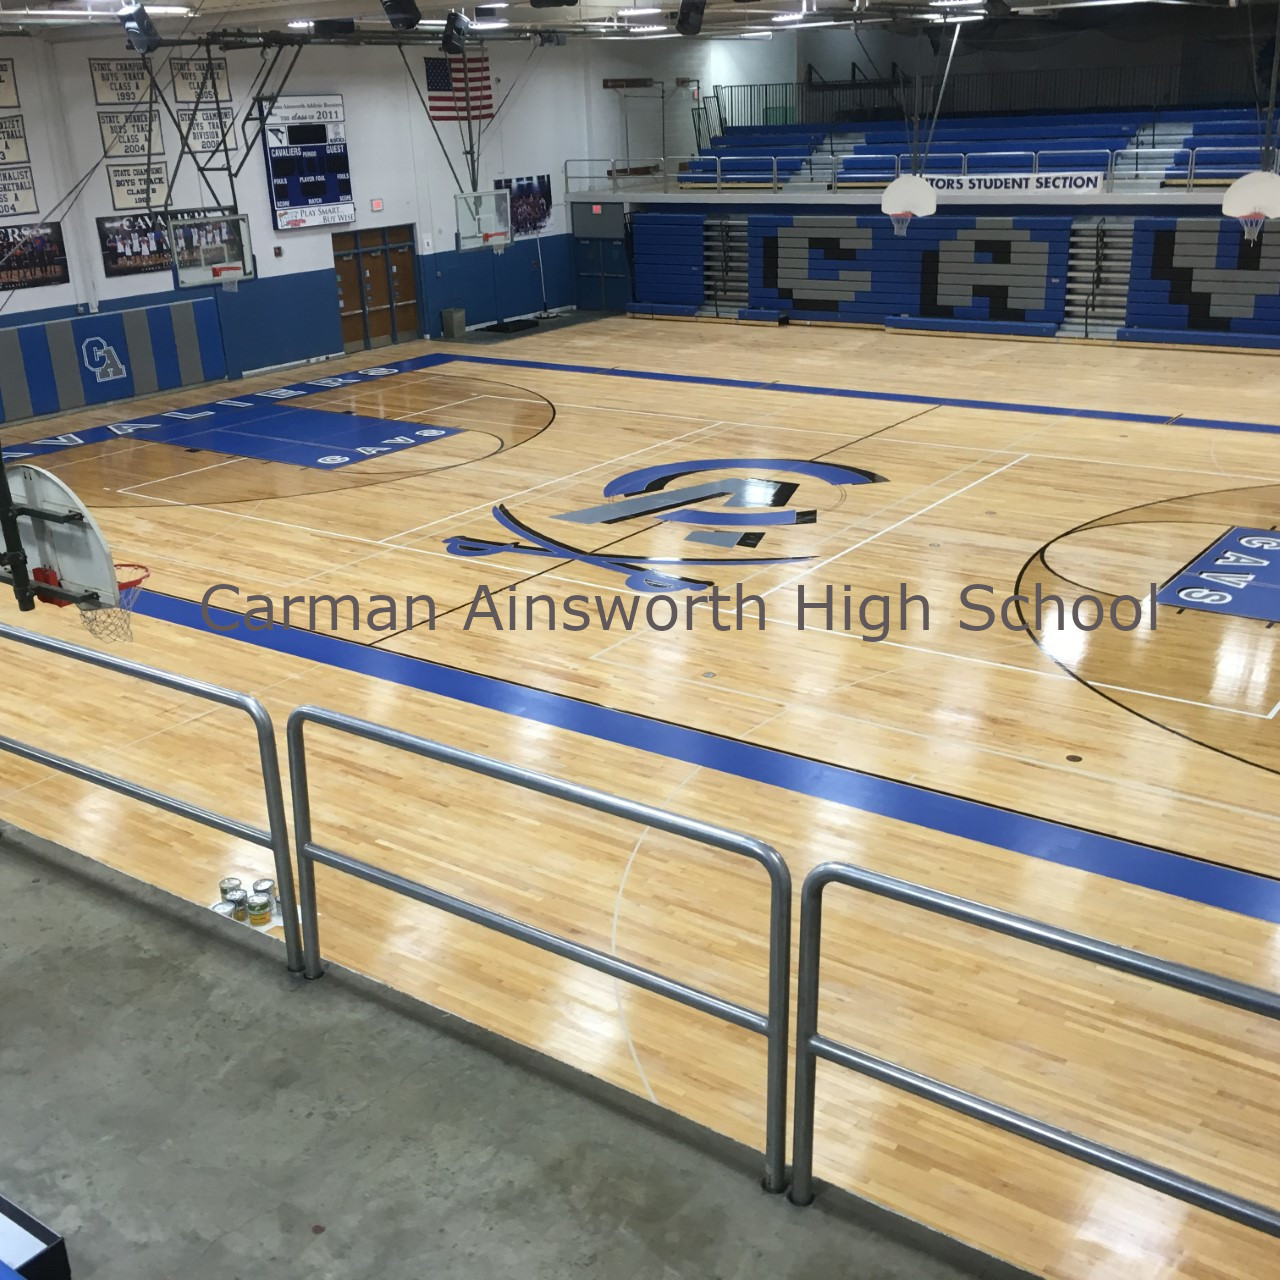 Carman Ainsworth High School